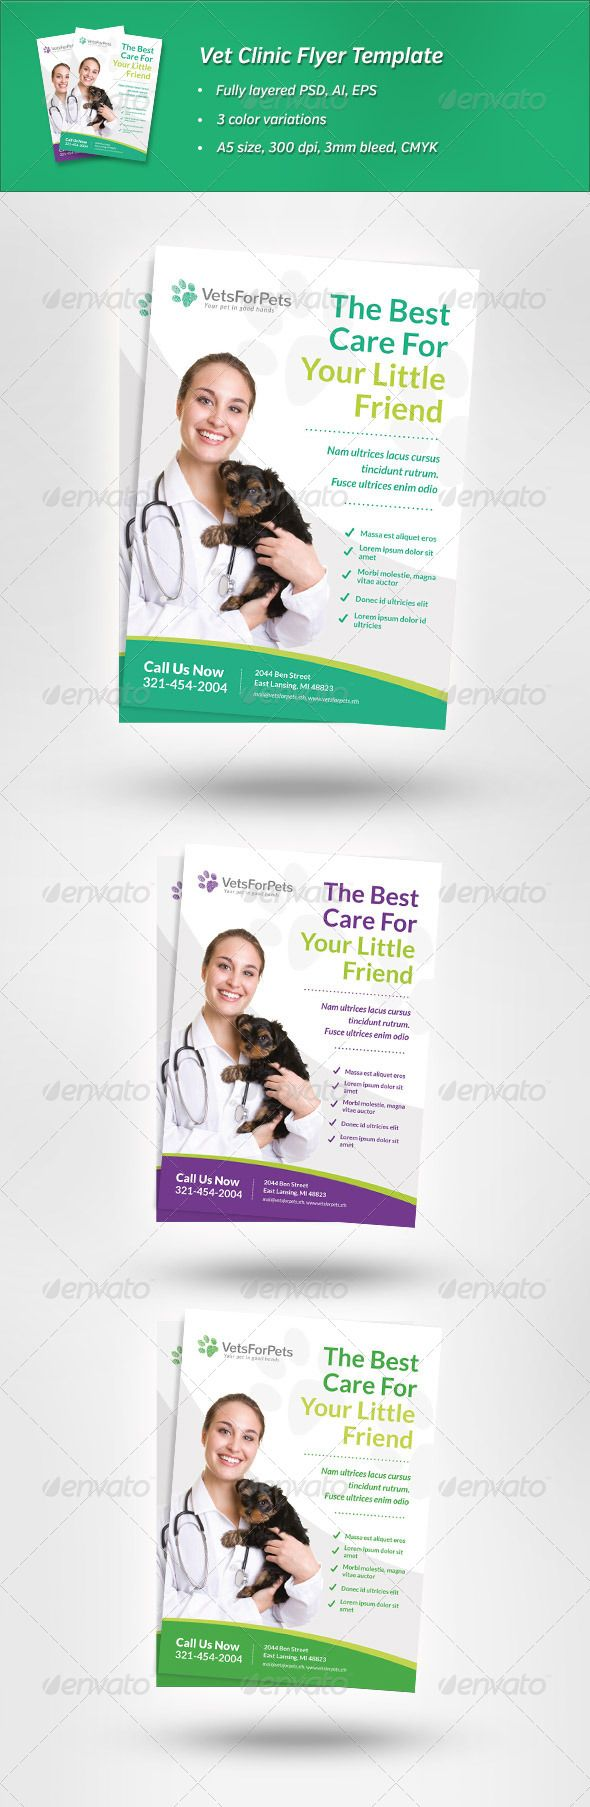 vet clinic flyer template this image is available on graphicriver clean and modern flyer to promote veterinarian clinic animal hospital